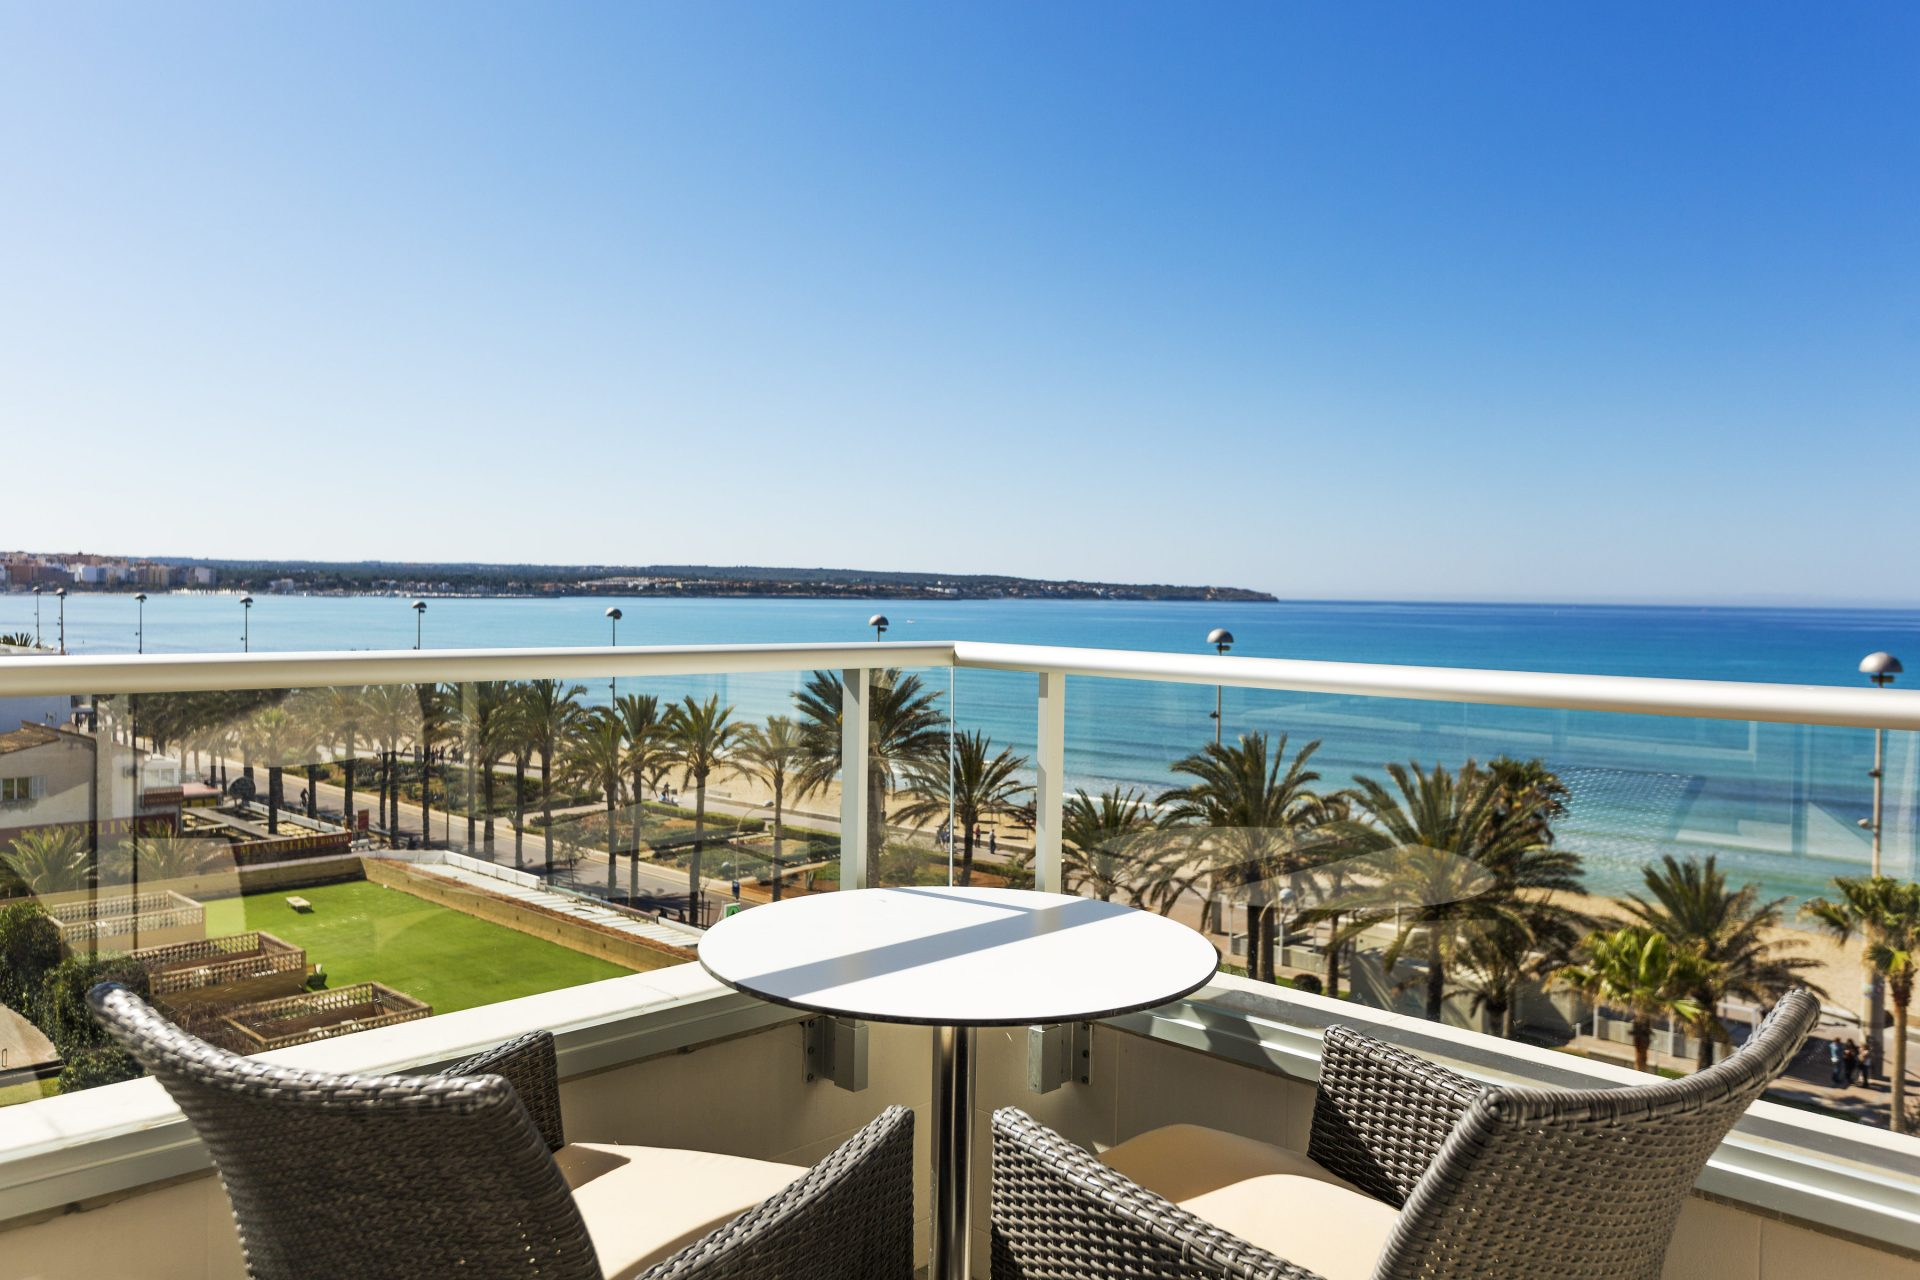 Table for two - Drinks on the terrace Pure Salt Garonda - Luxury Hotels - Amazing views - Playa de Palma - Mallorca